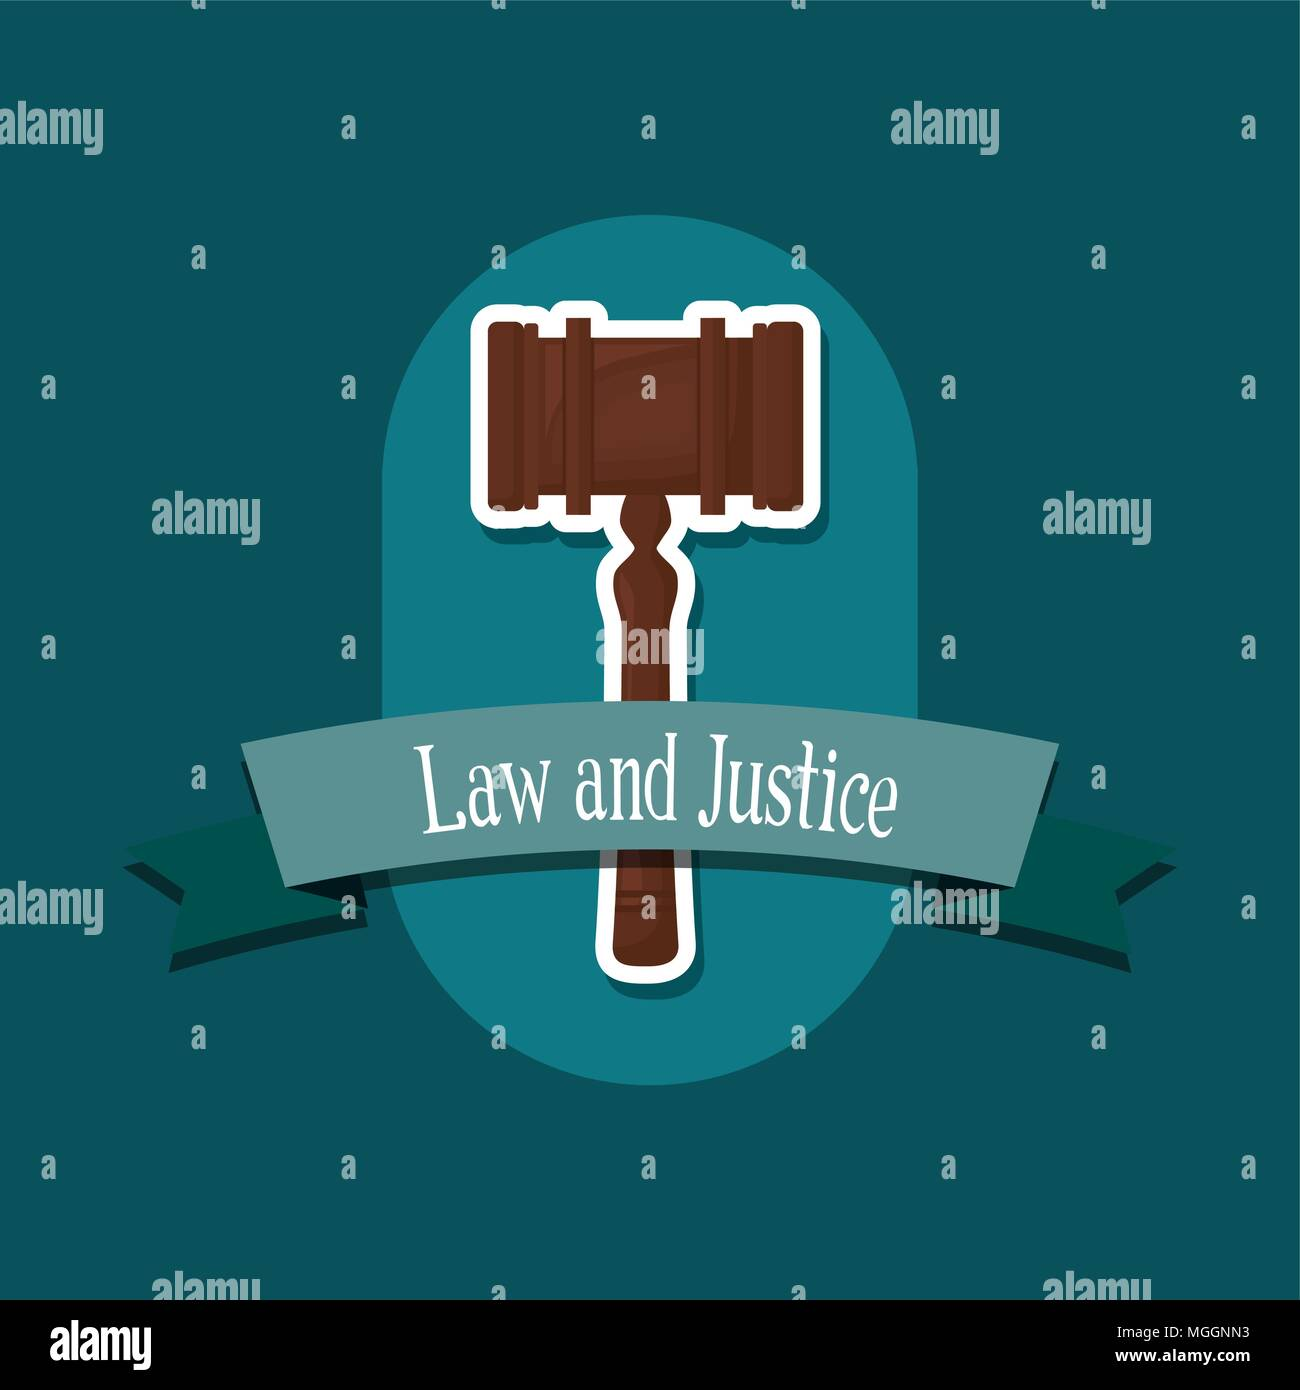 emblem of law and justice concept with gavel icon over blue background, colorful design. vector illustraton - Stock Vector